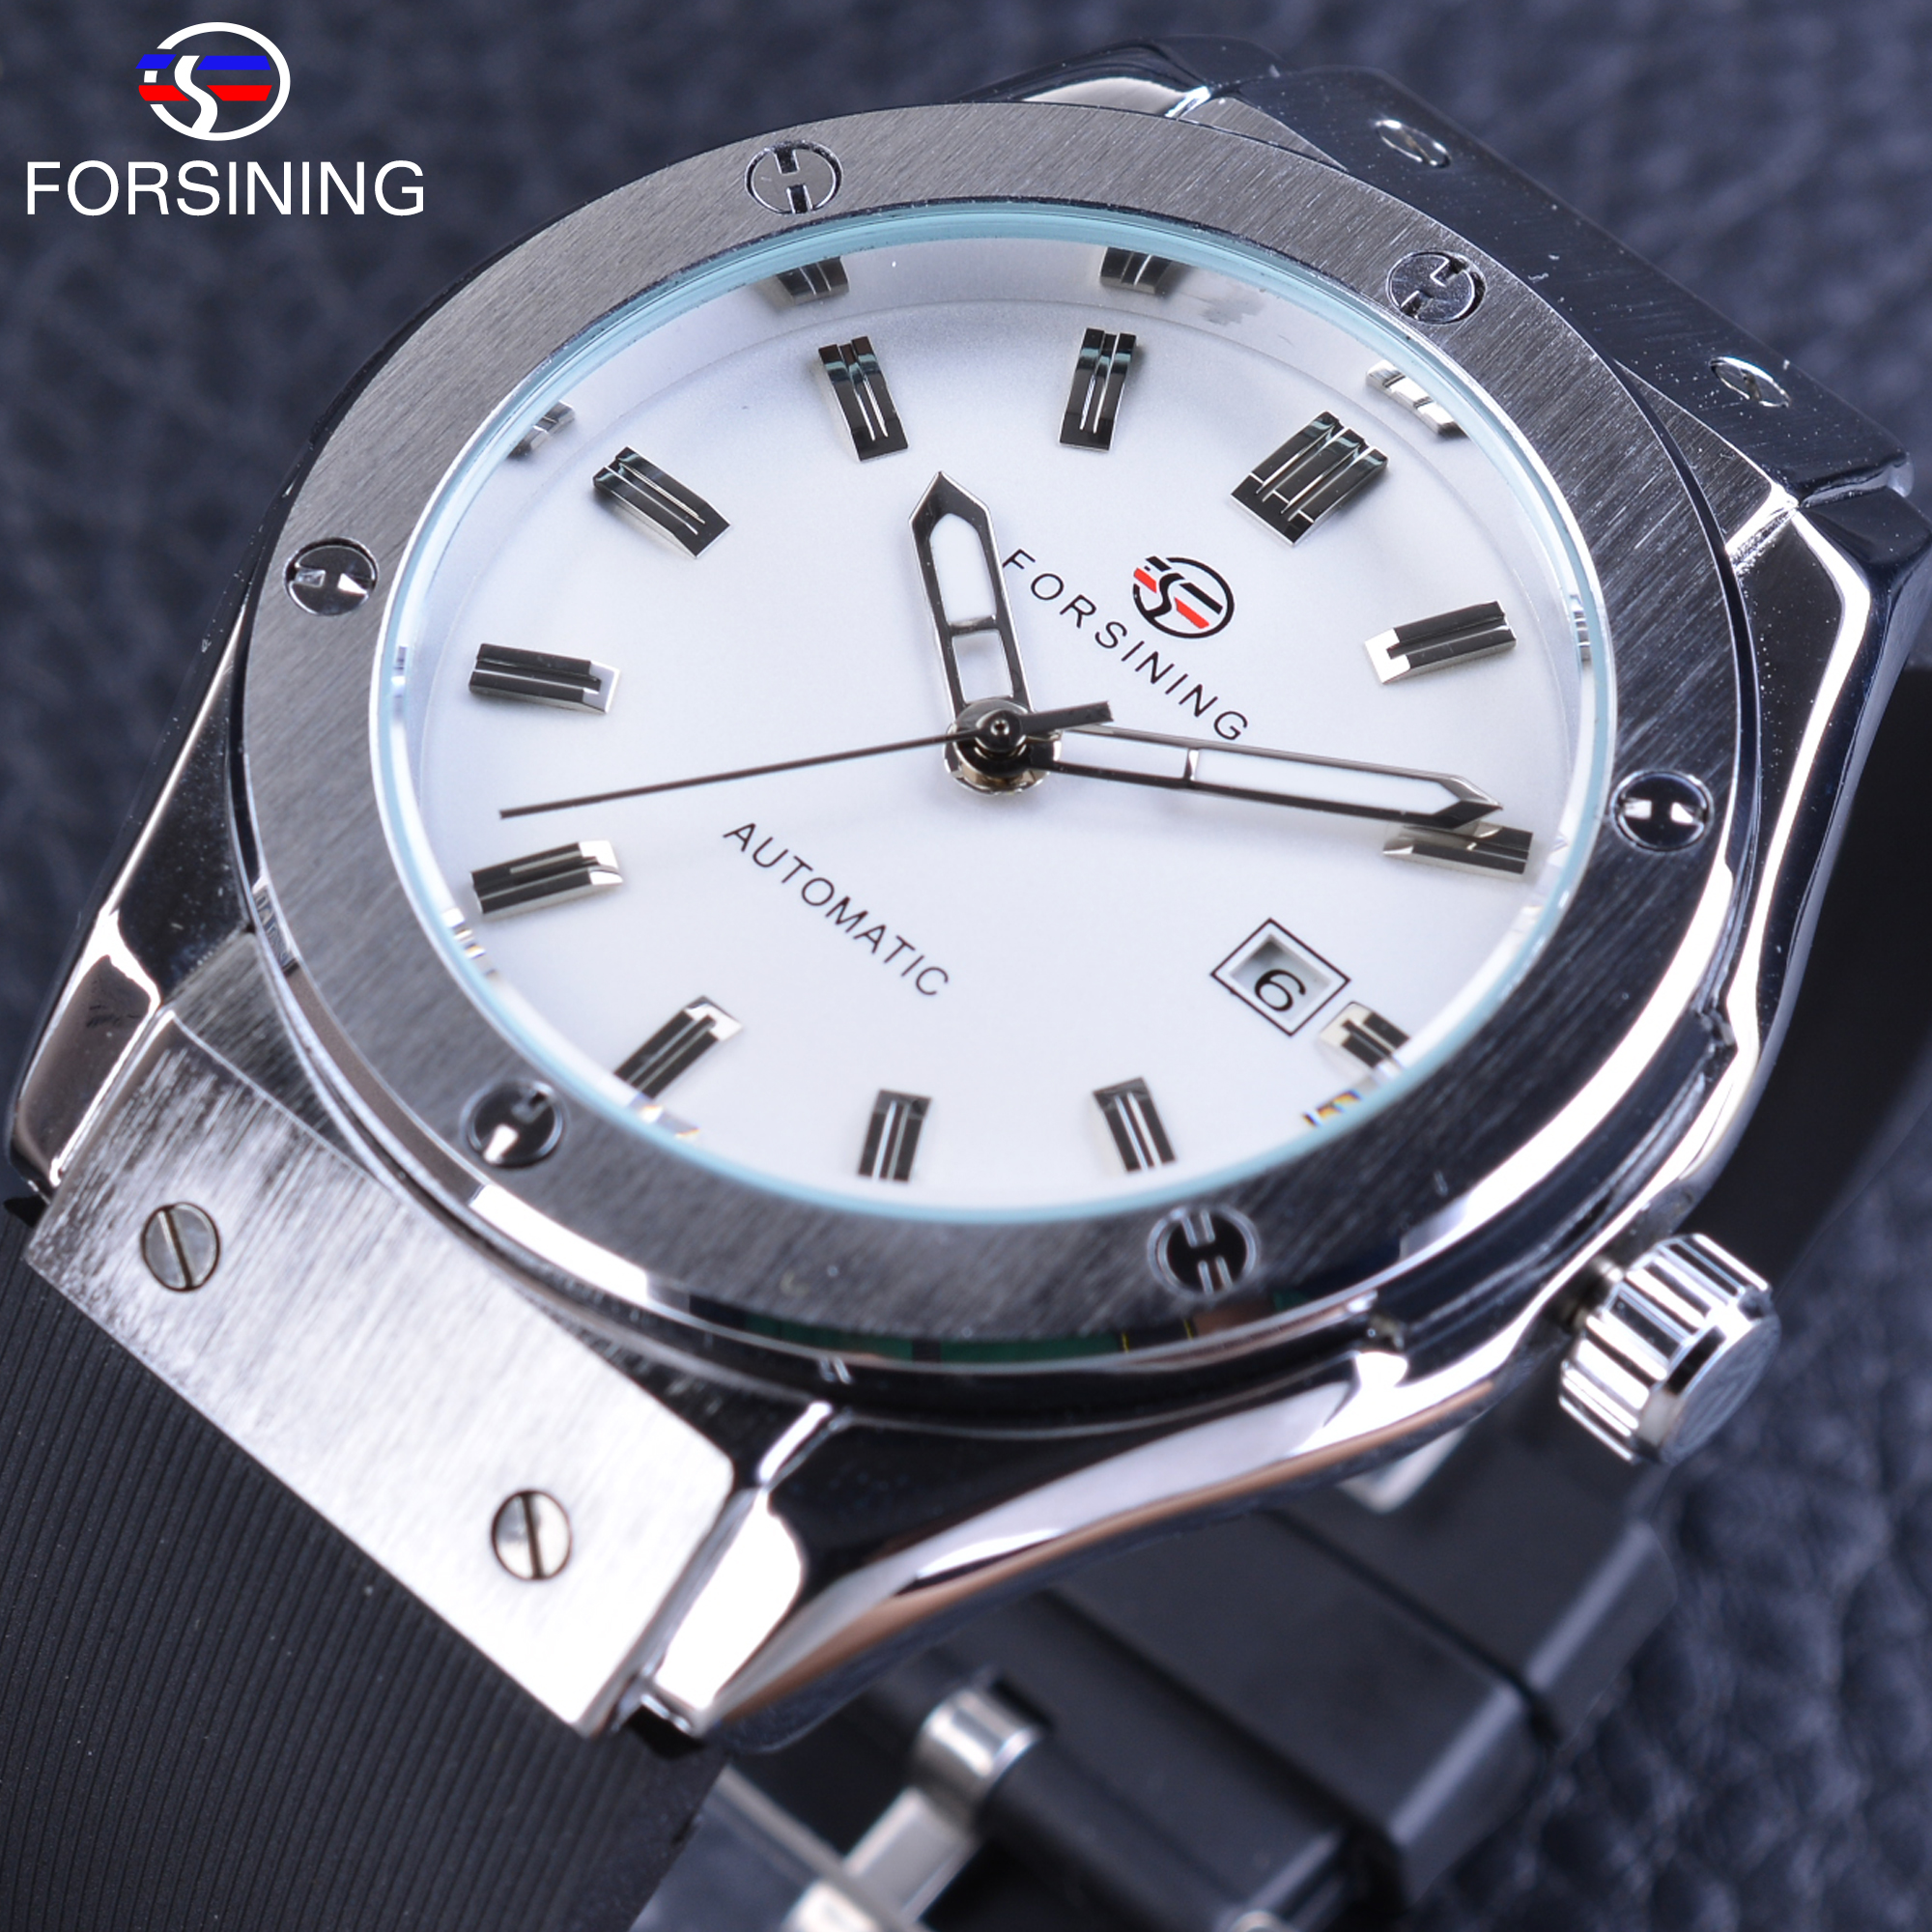 Forsining White Dial Sport Watch Mechanical Watches for Men Silver Stainless Steel Calendar Display Silicone band Clock Male golden silver transparent hollow dial quartz men wrist watch stainless steel band casual sport watches man analog male clock gif